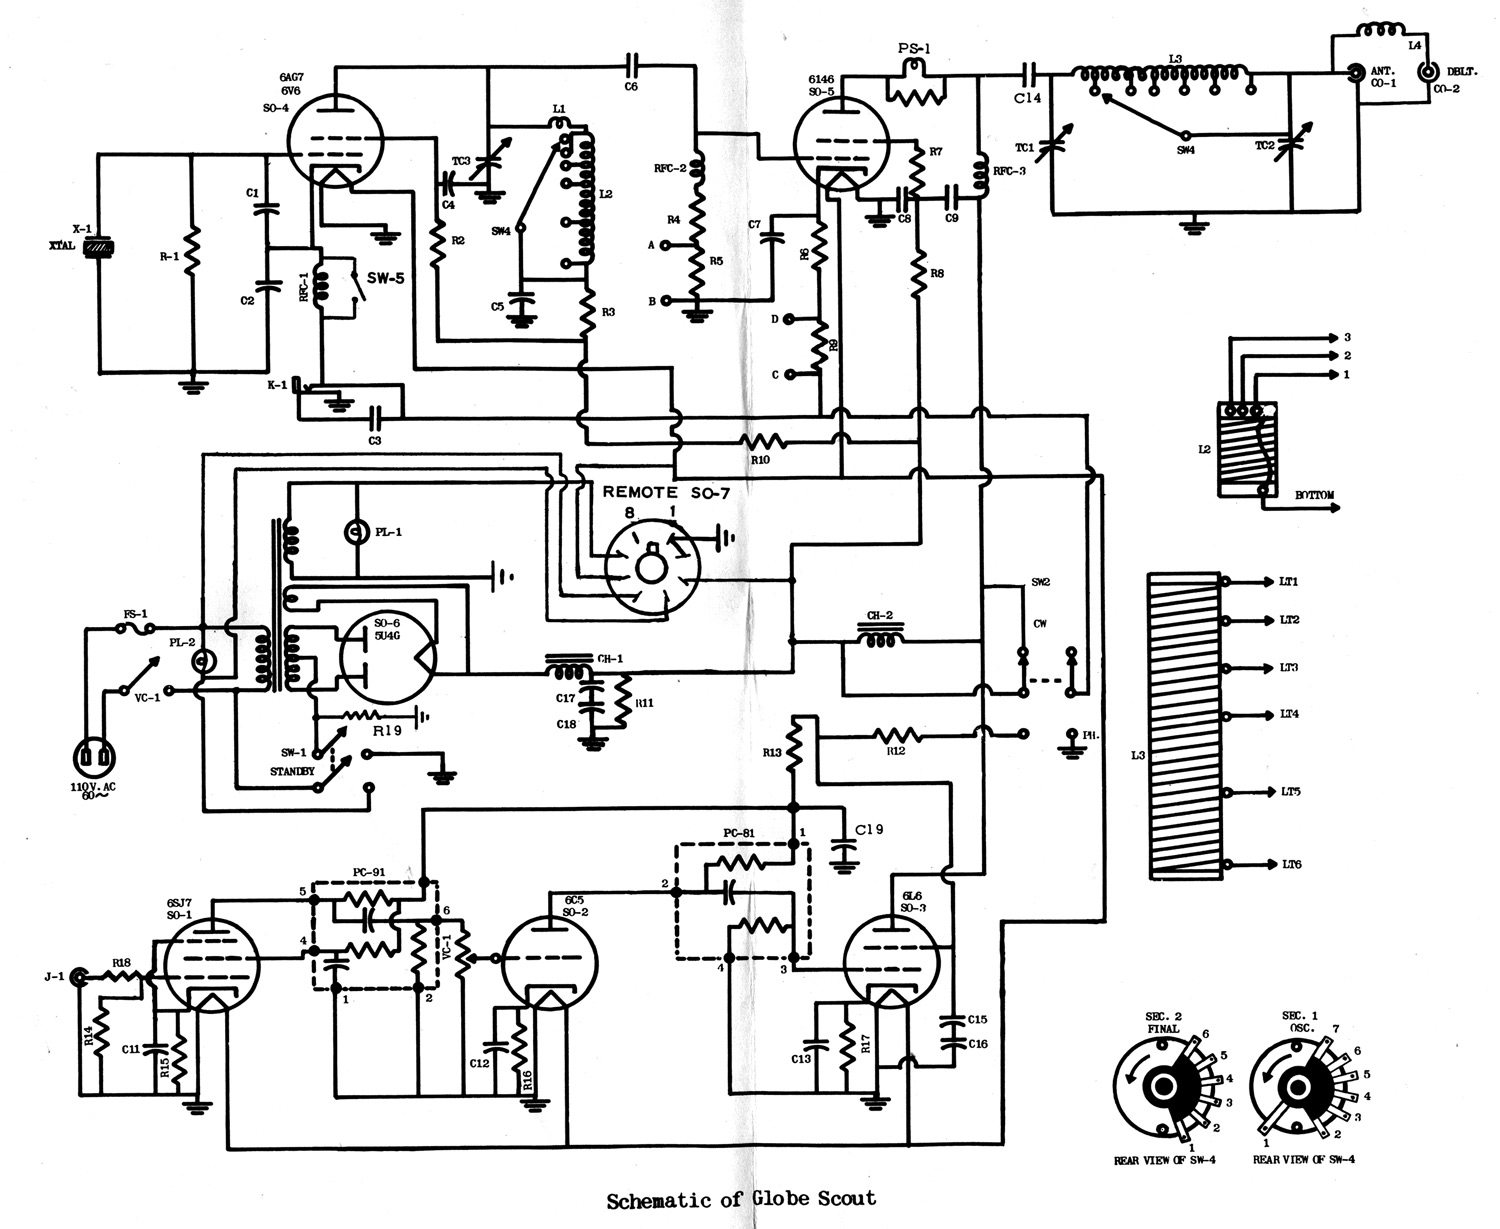 Pontoon Boat Radio Schematic